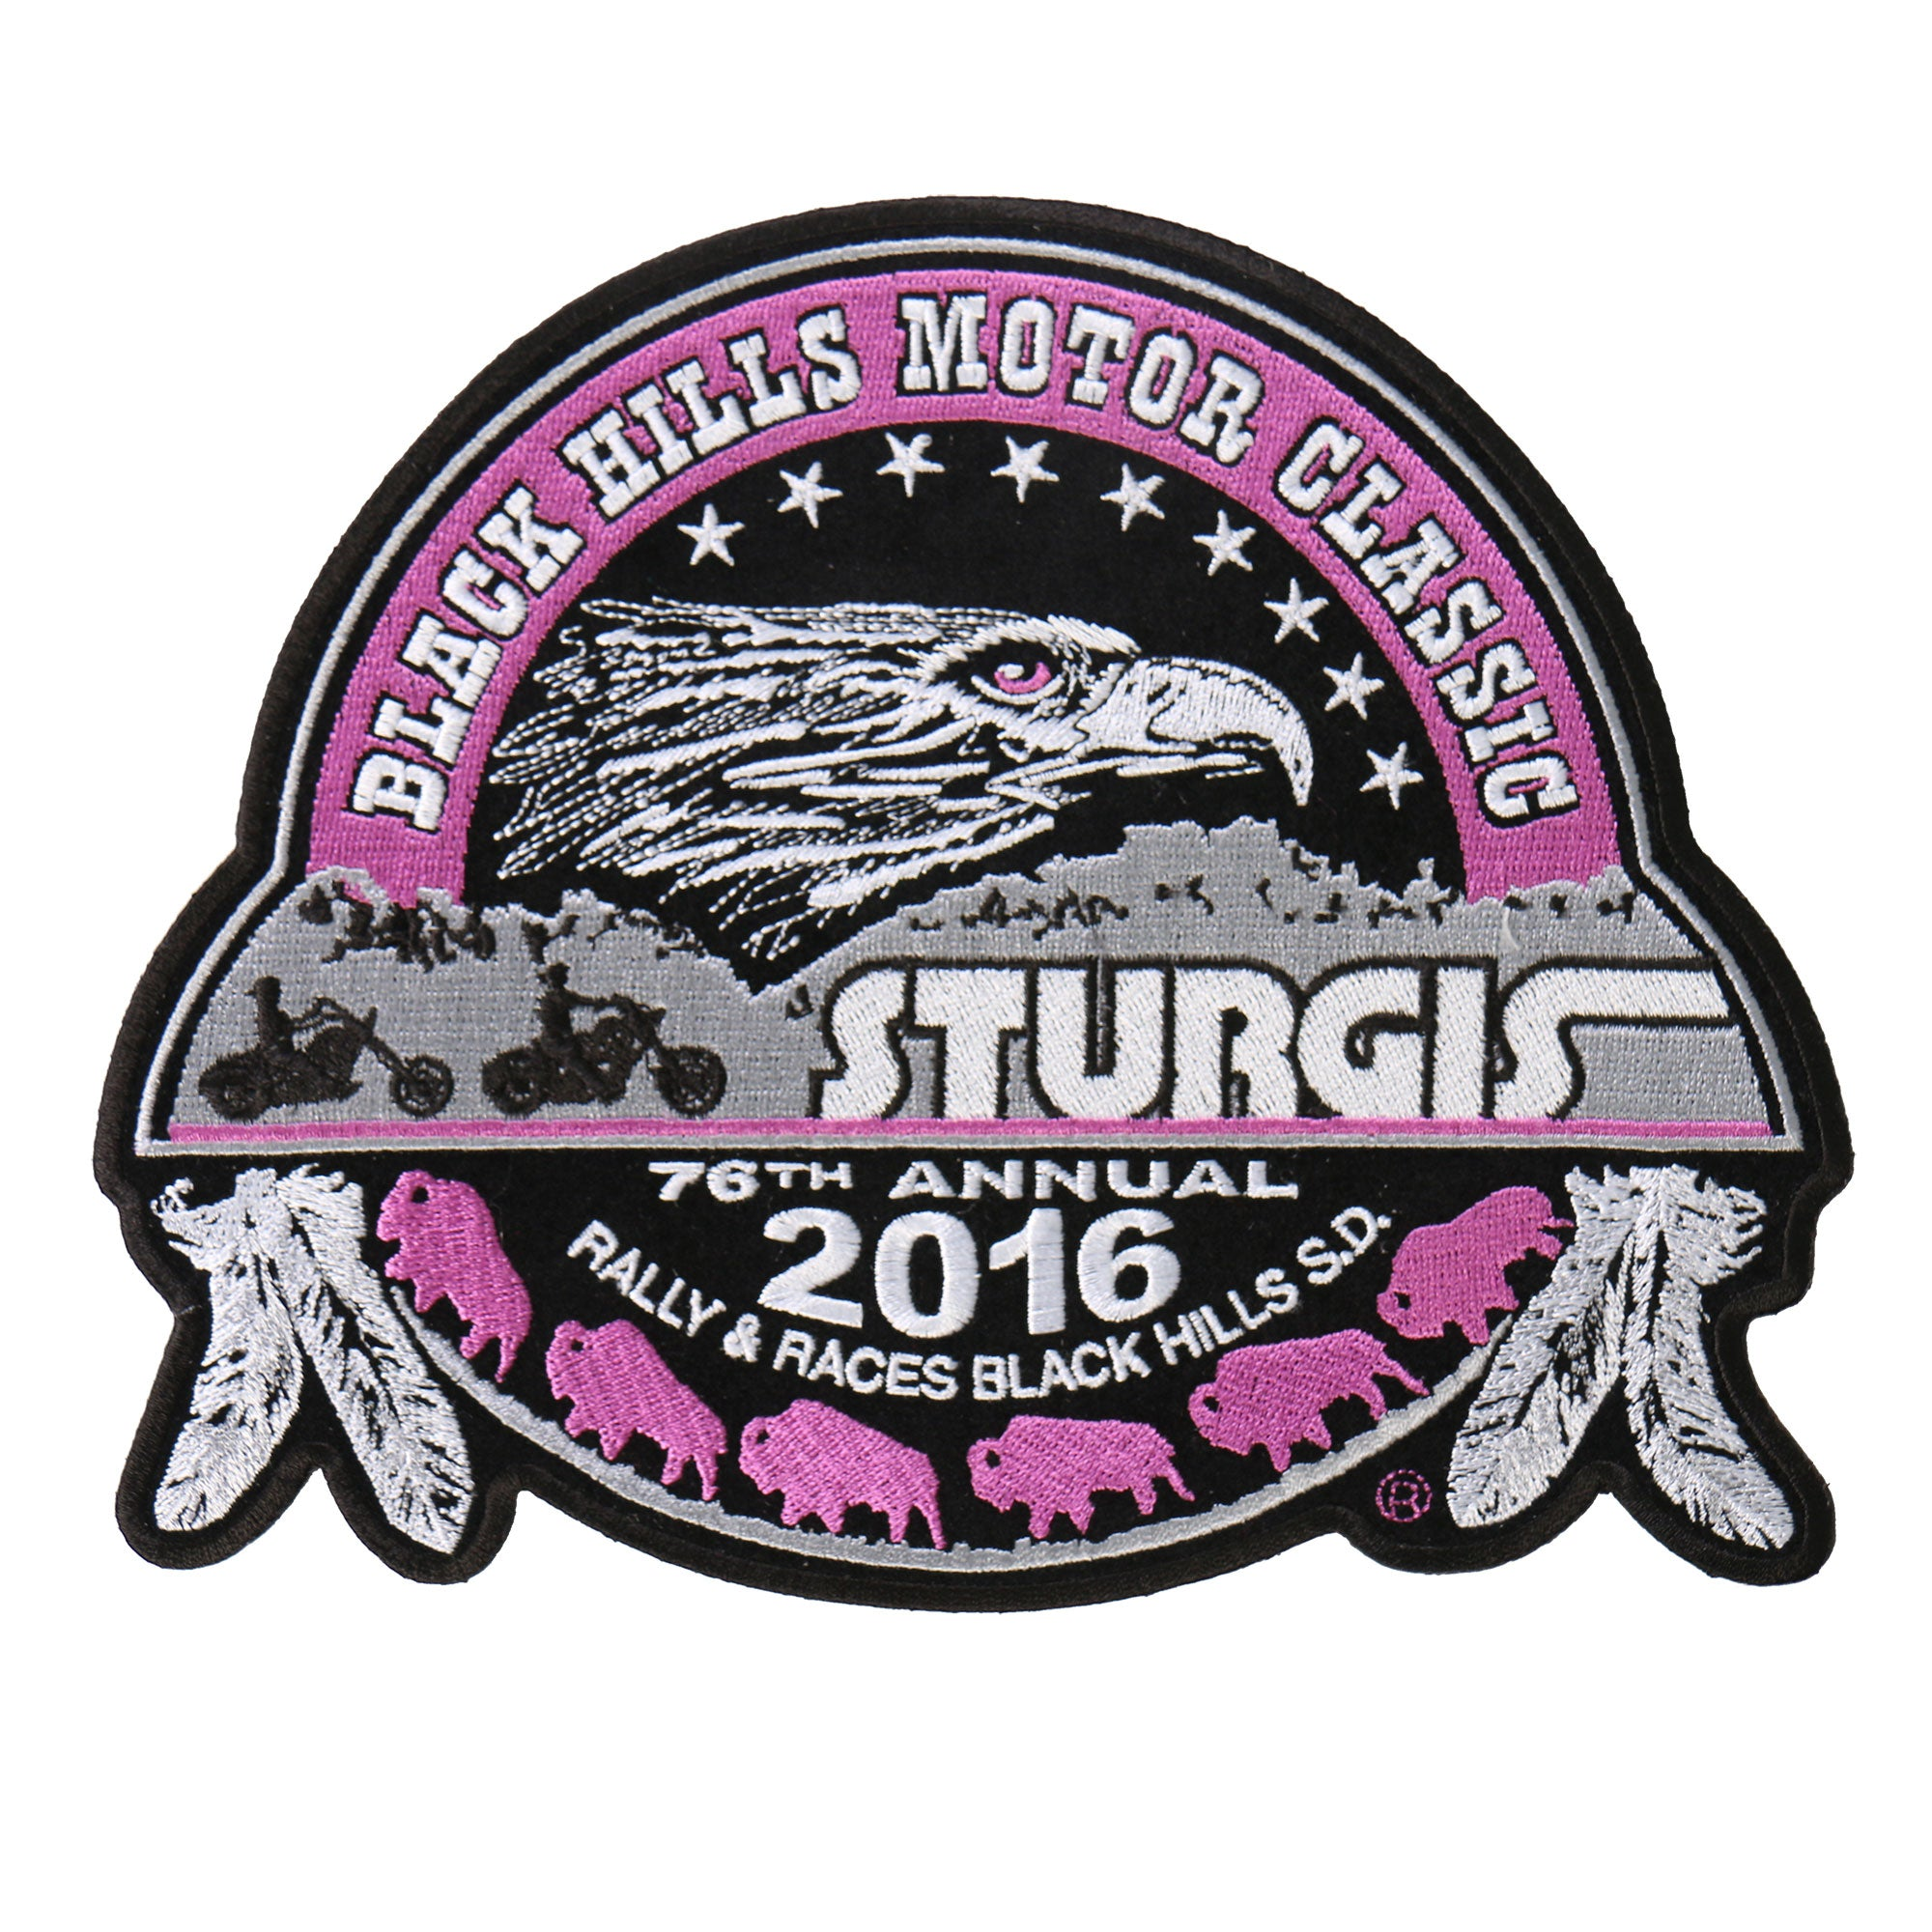 Official 2016 Sturgis Motorcycle Rally Composite Ladies Patch